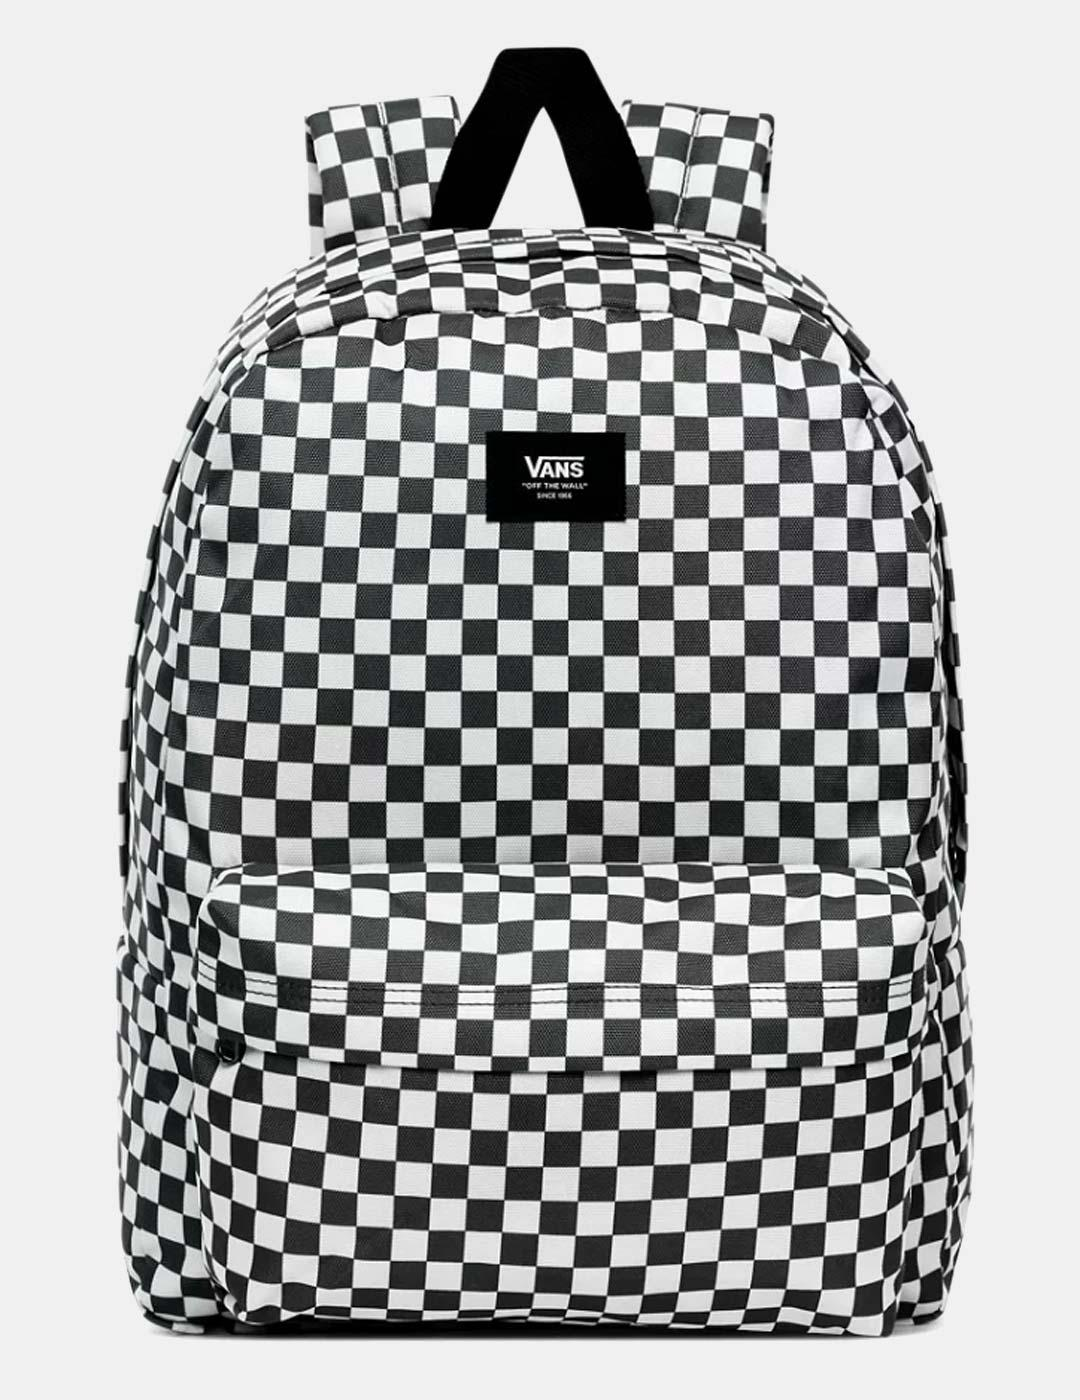 Mochila VANS OLD SKOOL III - Black/White Check